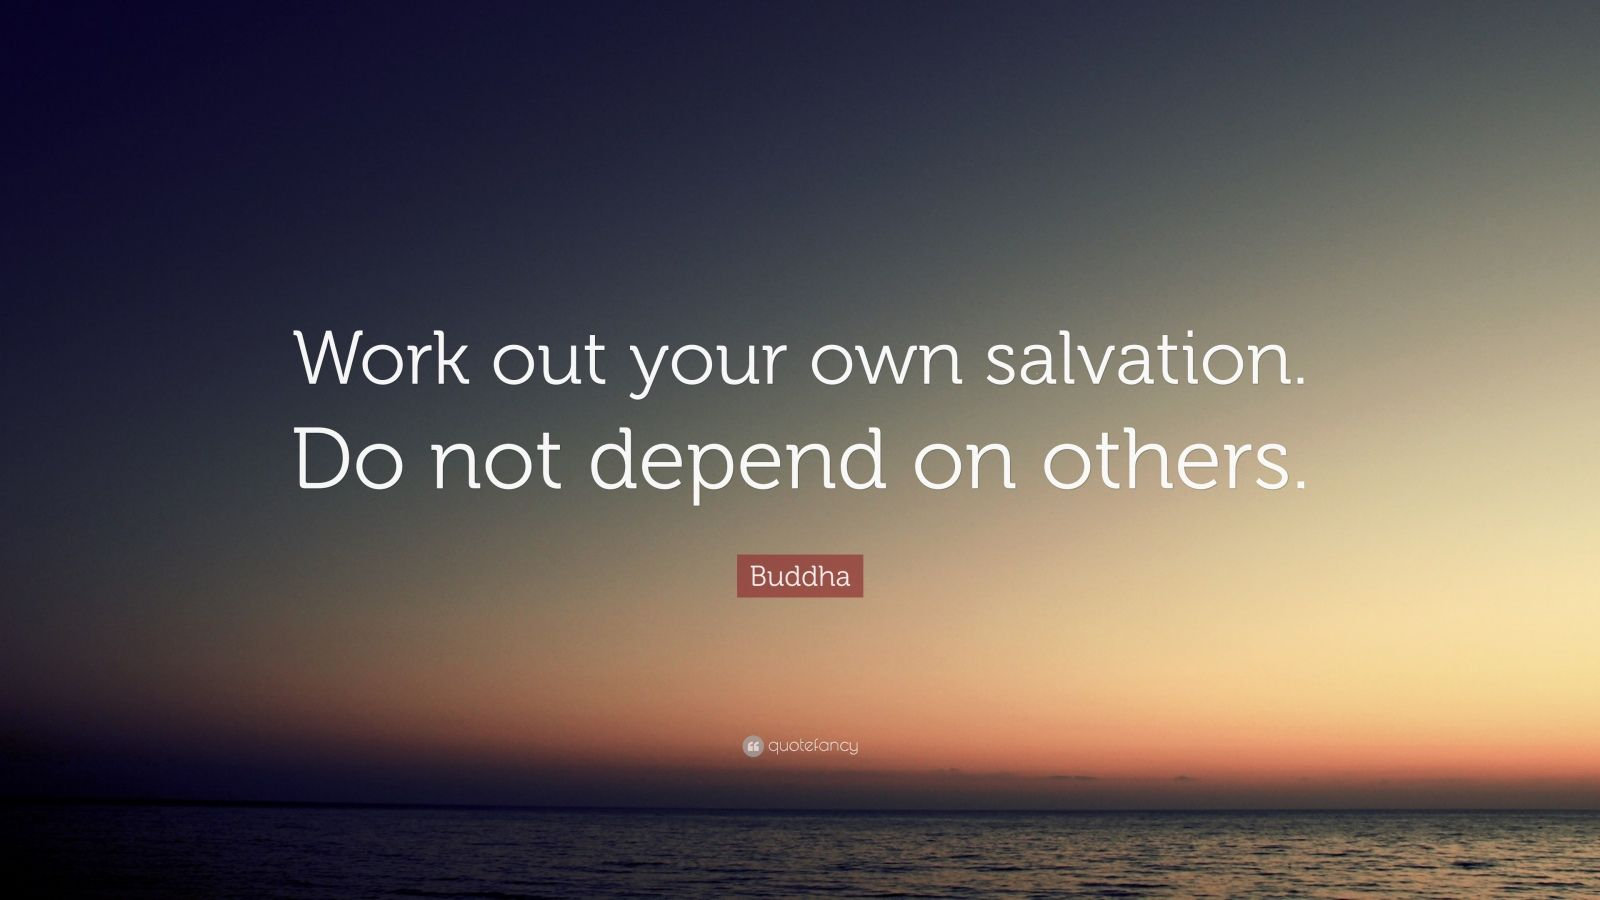 Wallpaper Of Yoga Quote Buddha Quote Work Out Your Own Salvation Do Not Depend